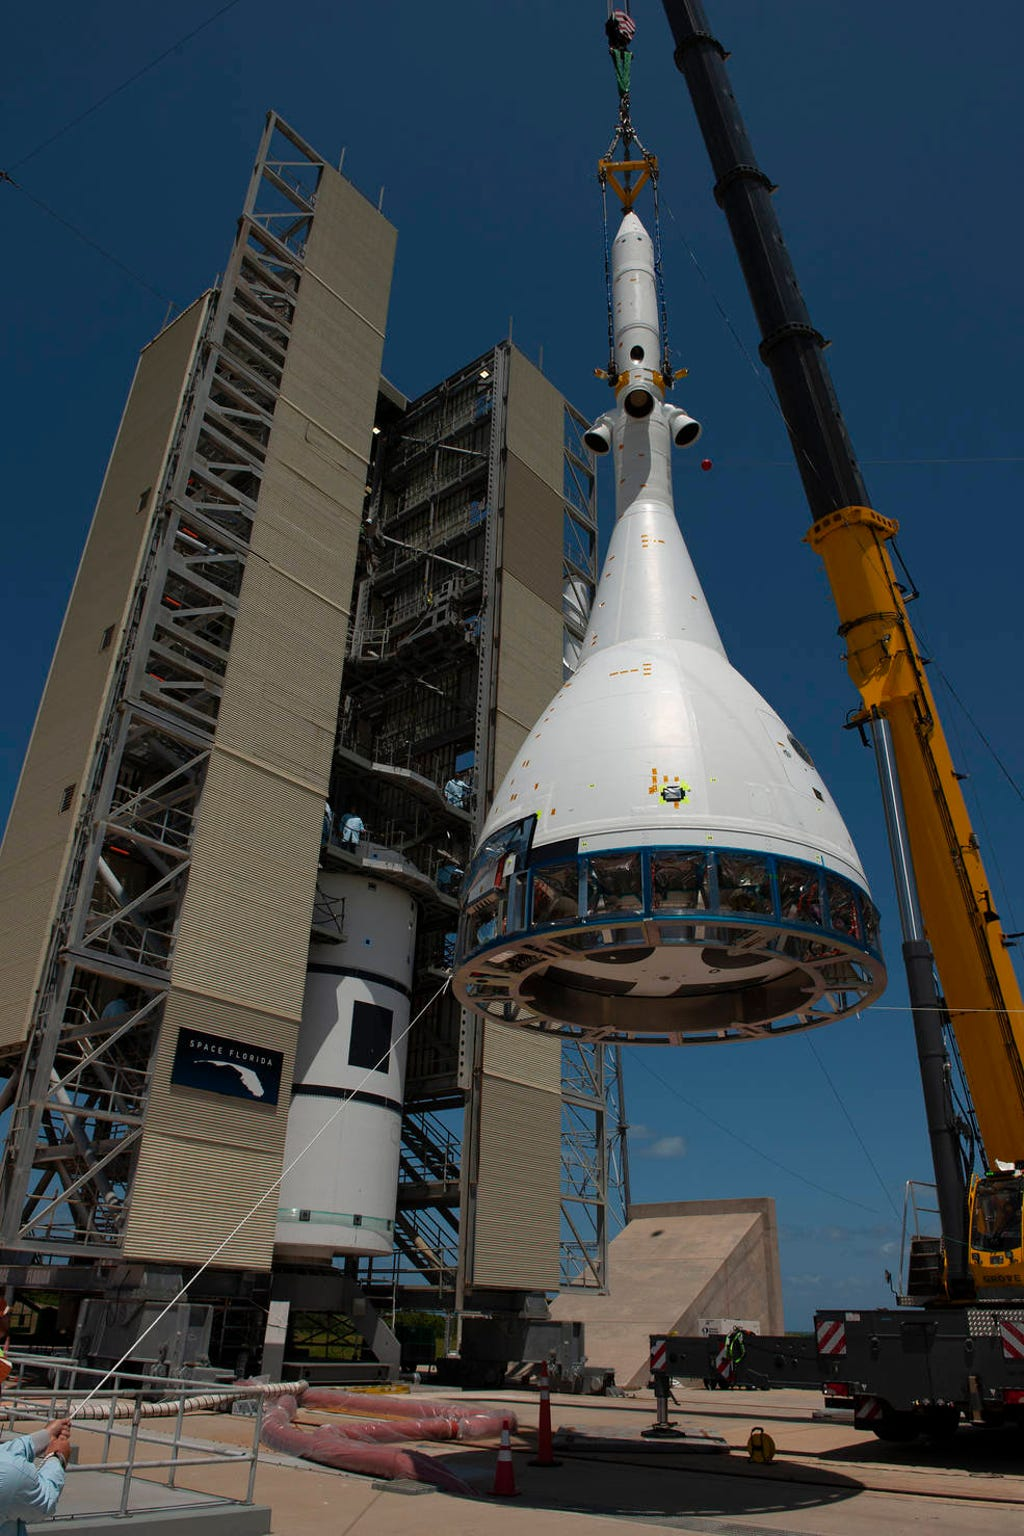 The test version of Orion attached to the Launch Abort System for the Ascent Abort-2 (AA-2) flight test is hoisted up by crane at Space Launch Complex 46 at Cape Canaveral Air Force Station in Florida on May 23, 2019. The flight test article will be moved inside the vertical integration facility for stacking atop the booster. The booster was procured by the U.S. Air Force and manufactured by Northrop Grumman. During AA-2, targeted for July 2, the LAS with Orion will launch on the booster more than six miles in altitude, where Orion's launch abort system will pull the capsule and its crew away to safety if an emergency occurs during ascent on the Space Launch System rocket. AA-2 is a critical safety test that helps pave the way for Artemis missions near the Moon, and will enable astronauts to set foot on the lunar surface by 2024.